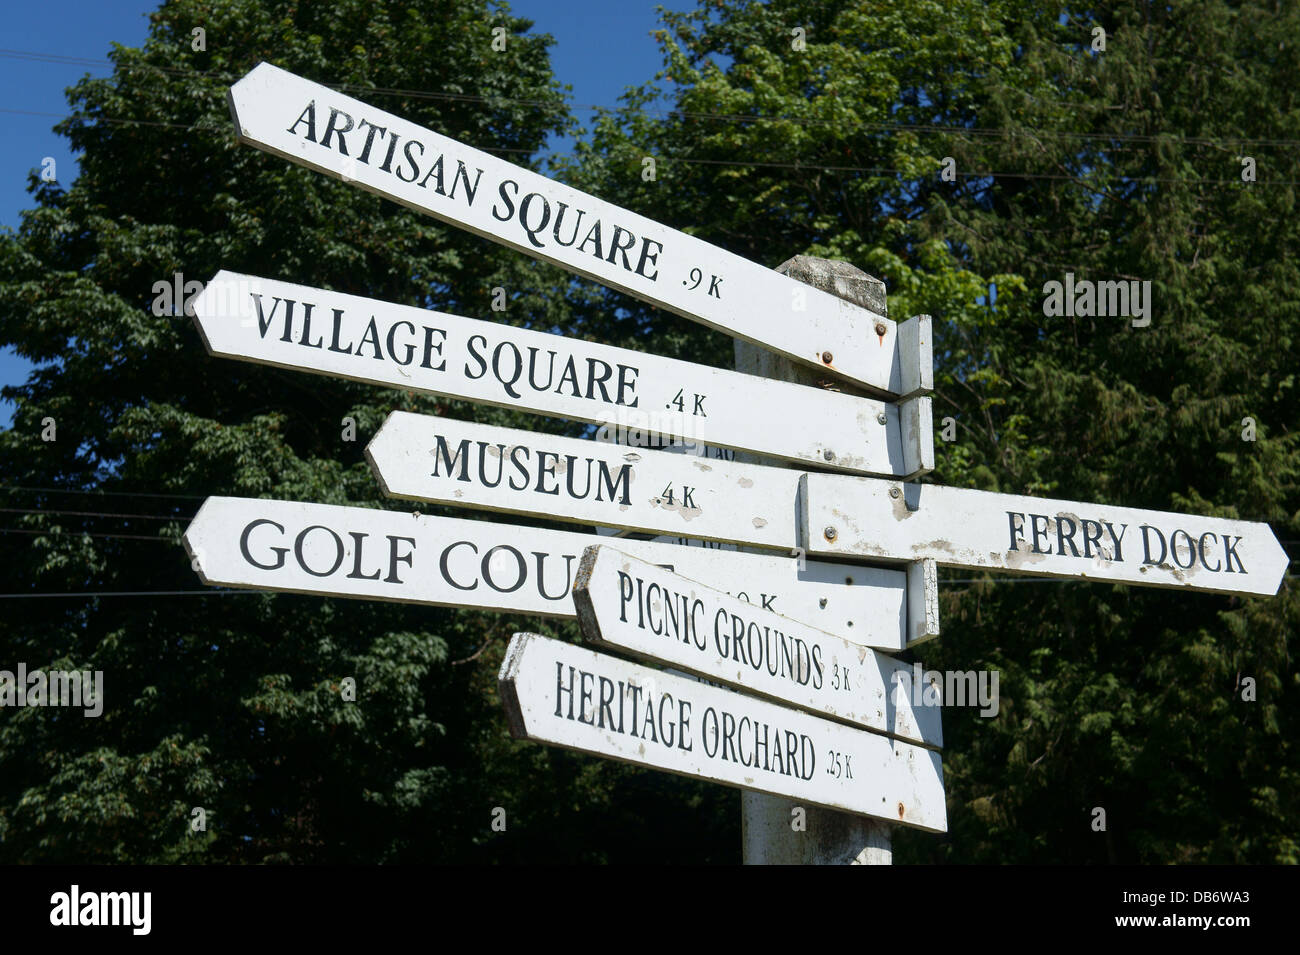 Signpost showing directions and distances to tourist attractions in Snug Cove on Bowen Island, BC, Canada Stock Photo